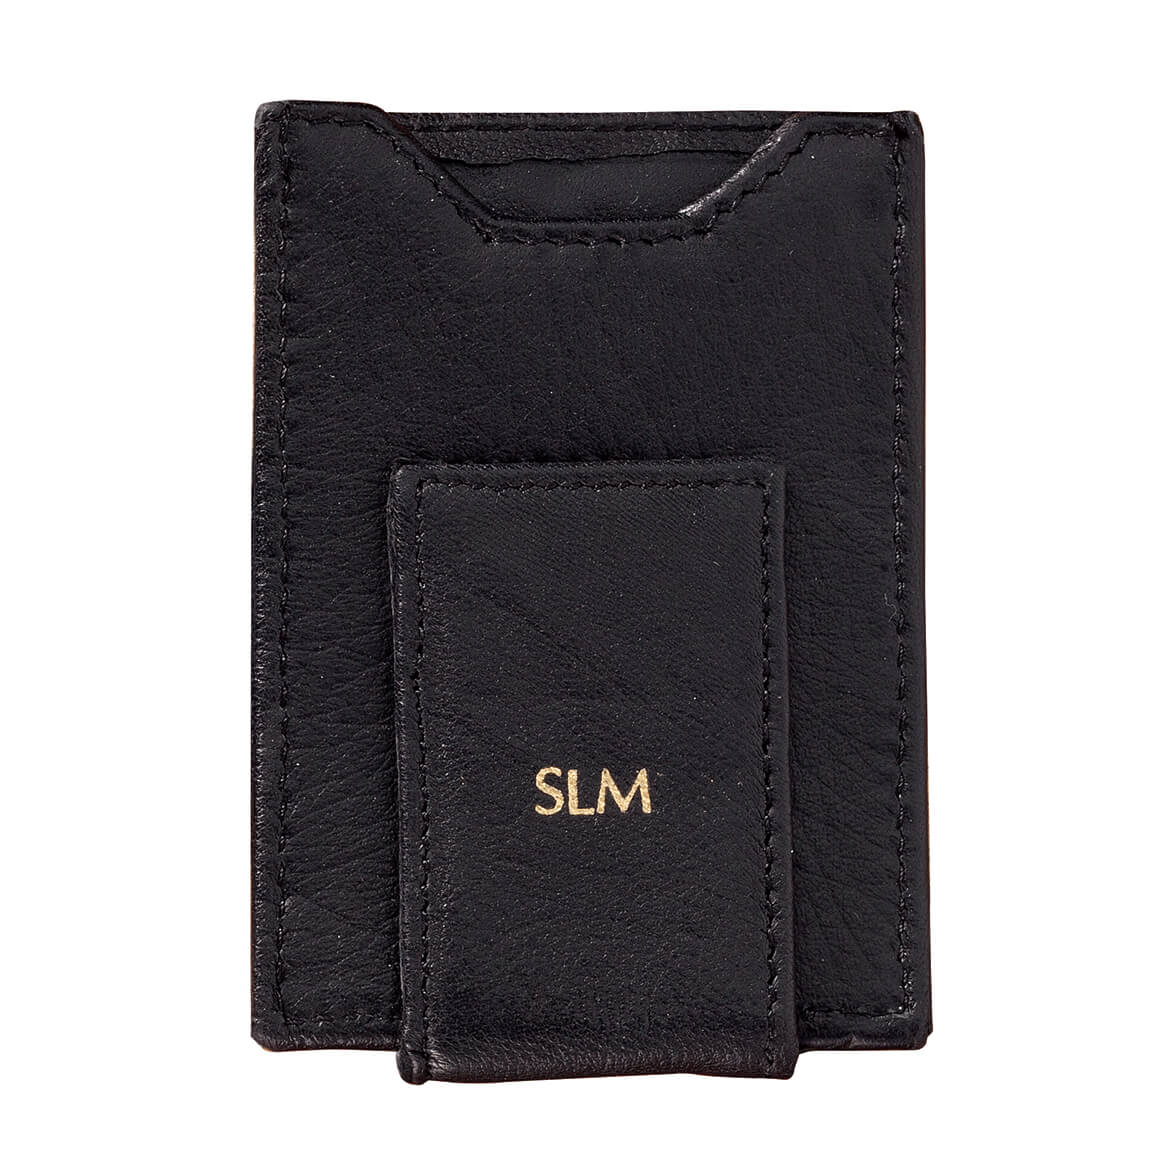 Personalized Front Pocket Wallet with Money Clip